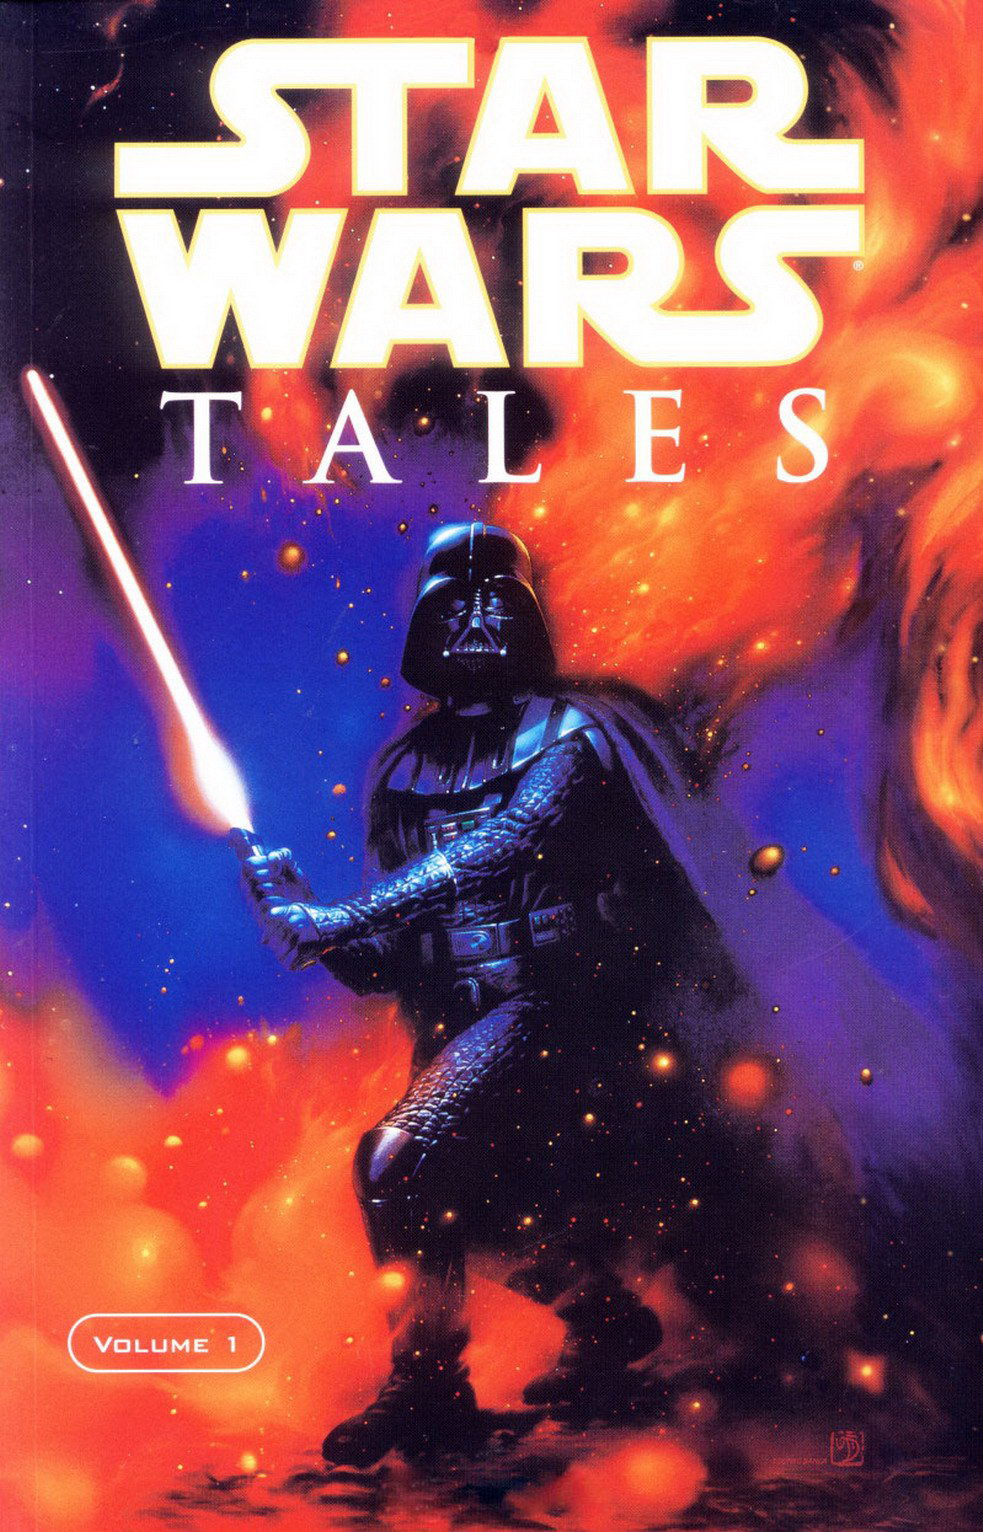 Star Wars Tales: Volume 1